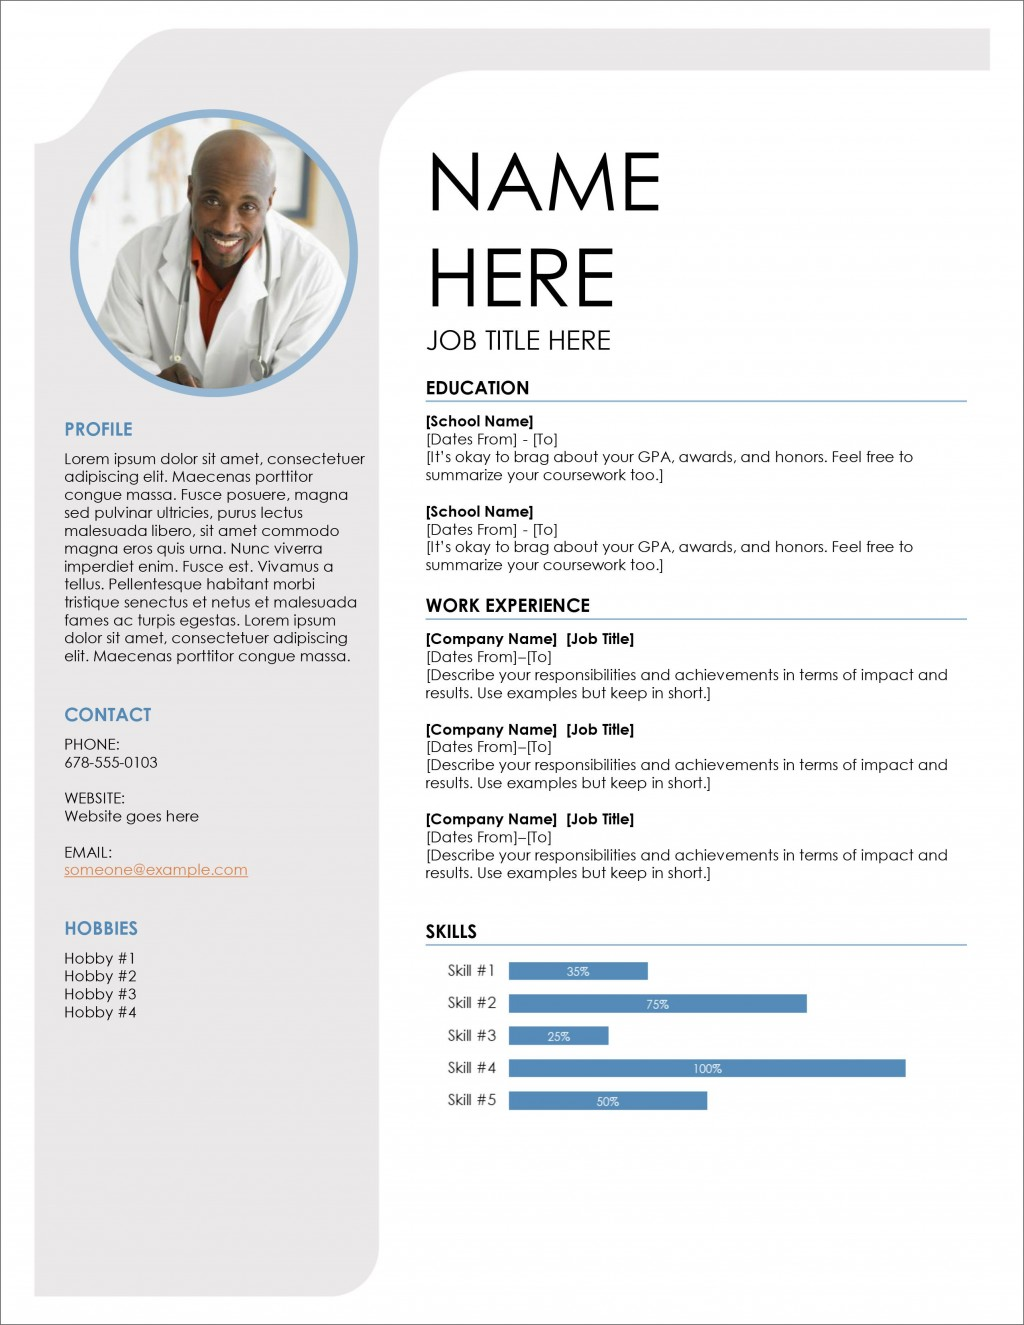 005 Unique Curriculum Vitae Template Free High Def  Download South Africa Format Pdf SampleLarge